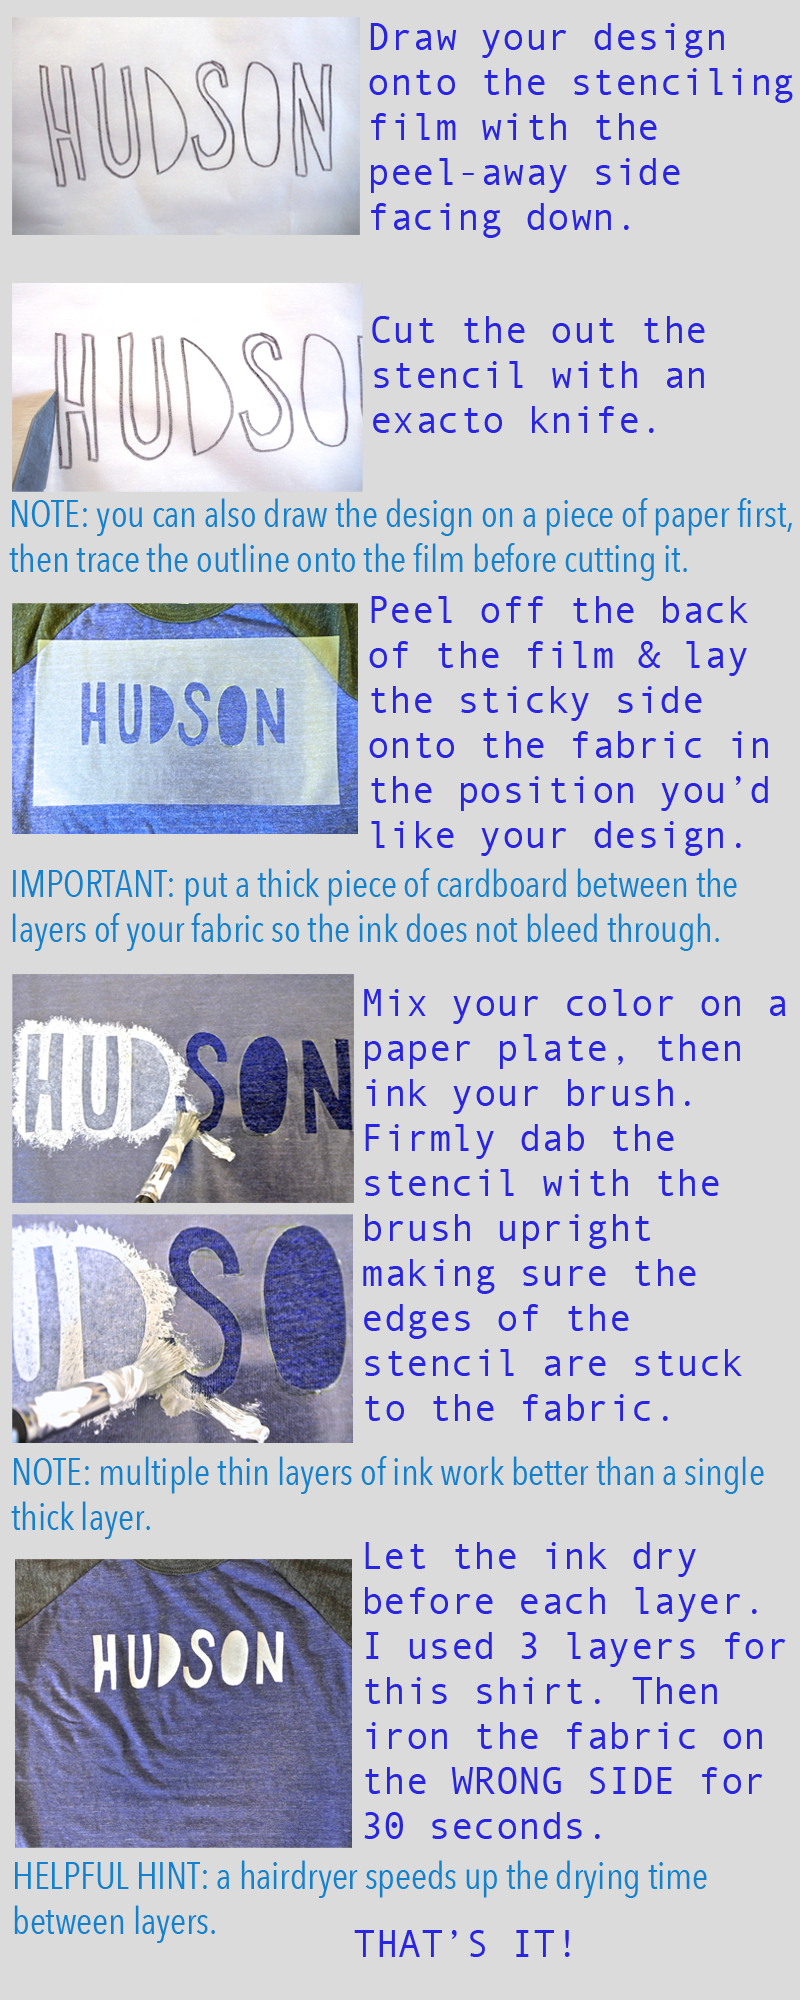 hudsonshirtdirections3.jpg